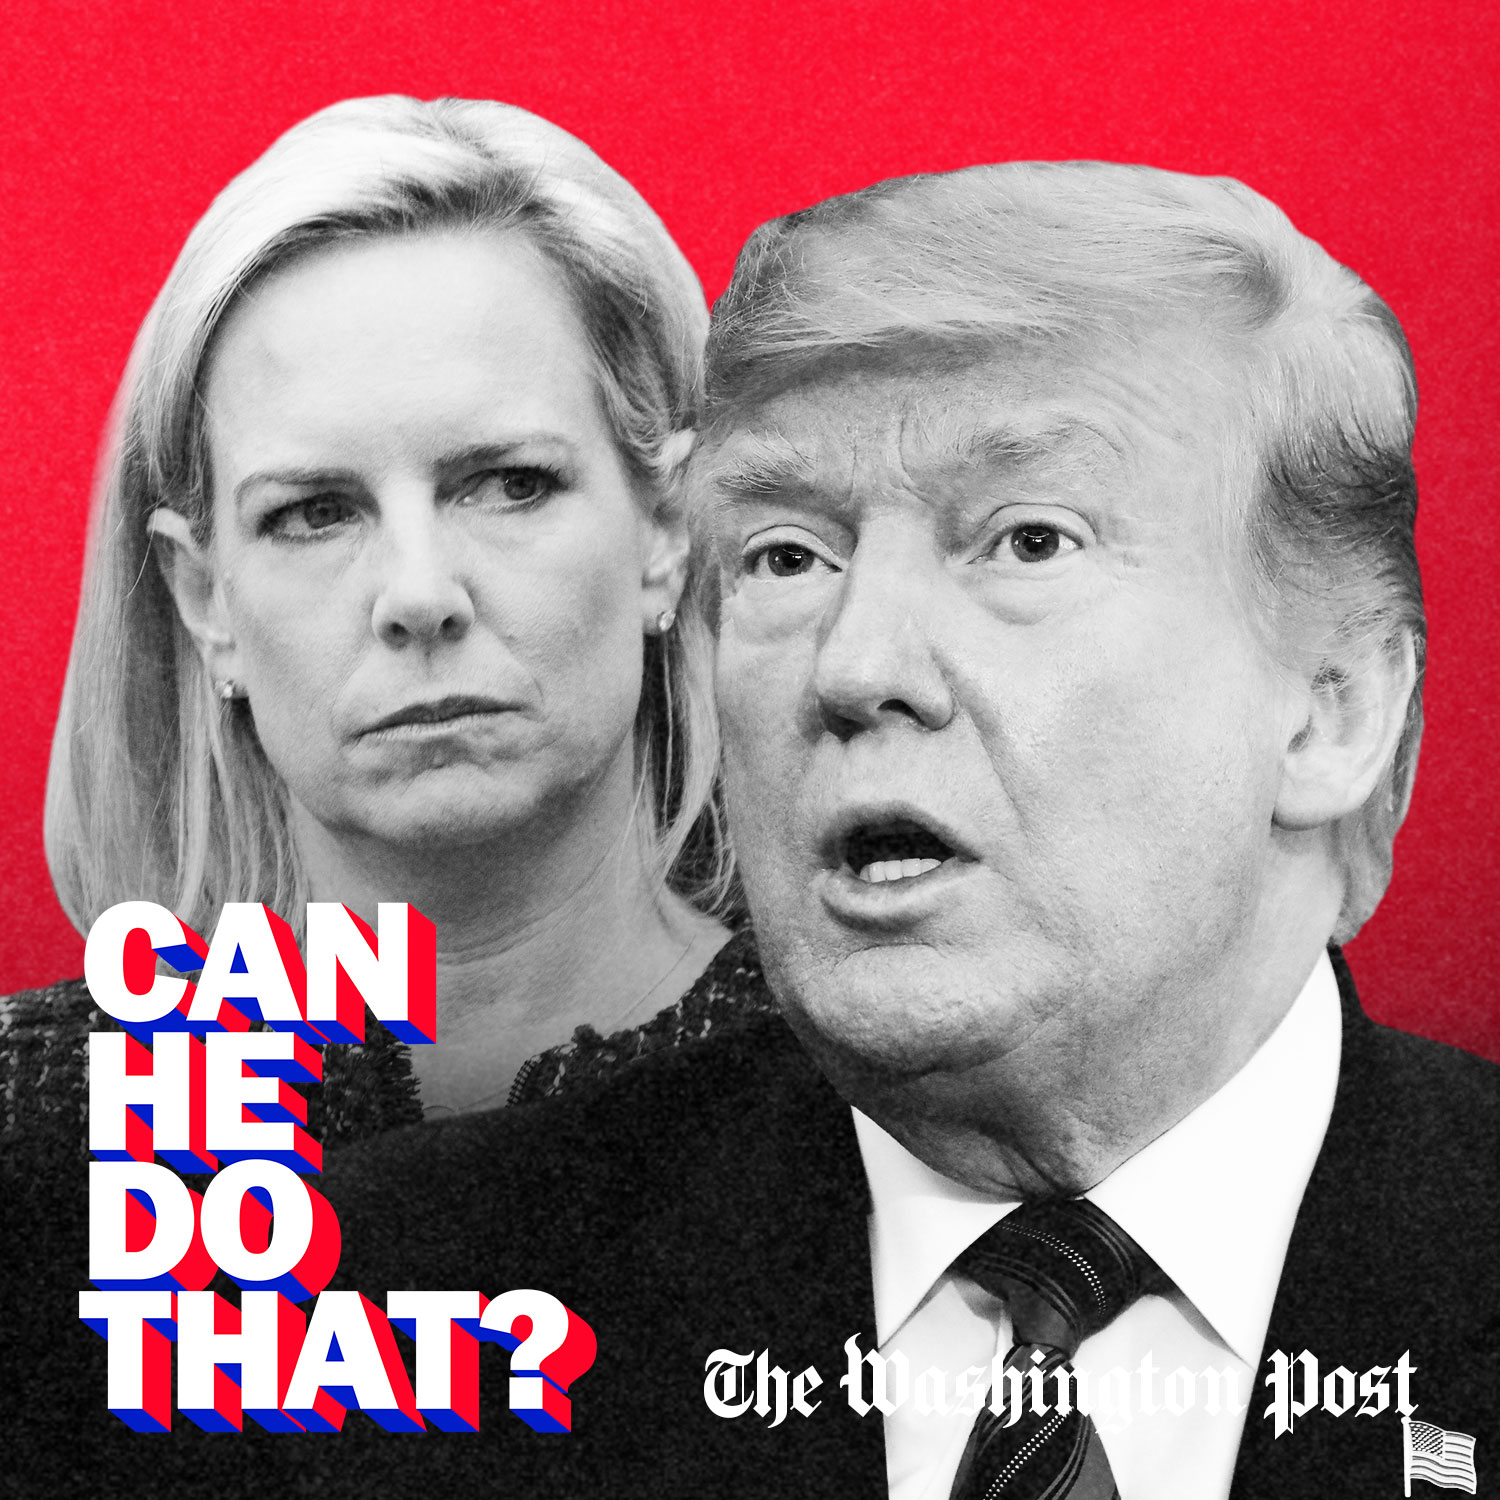 Trump dismantled leadership at DHS. Can he fill key vacancies however he wants to?